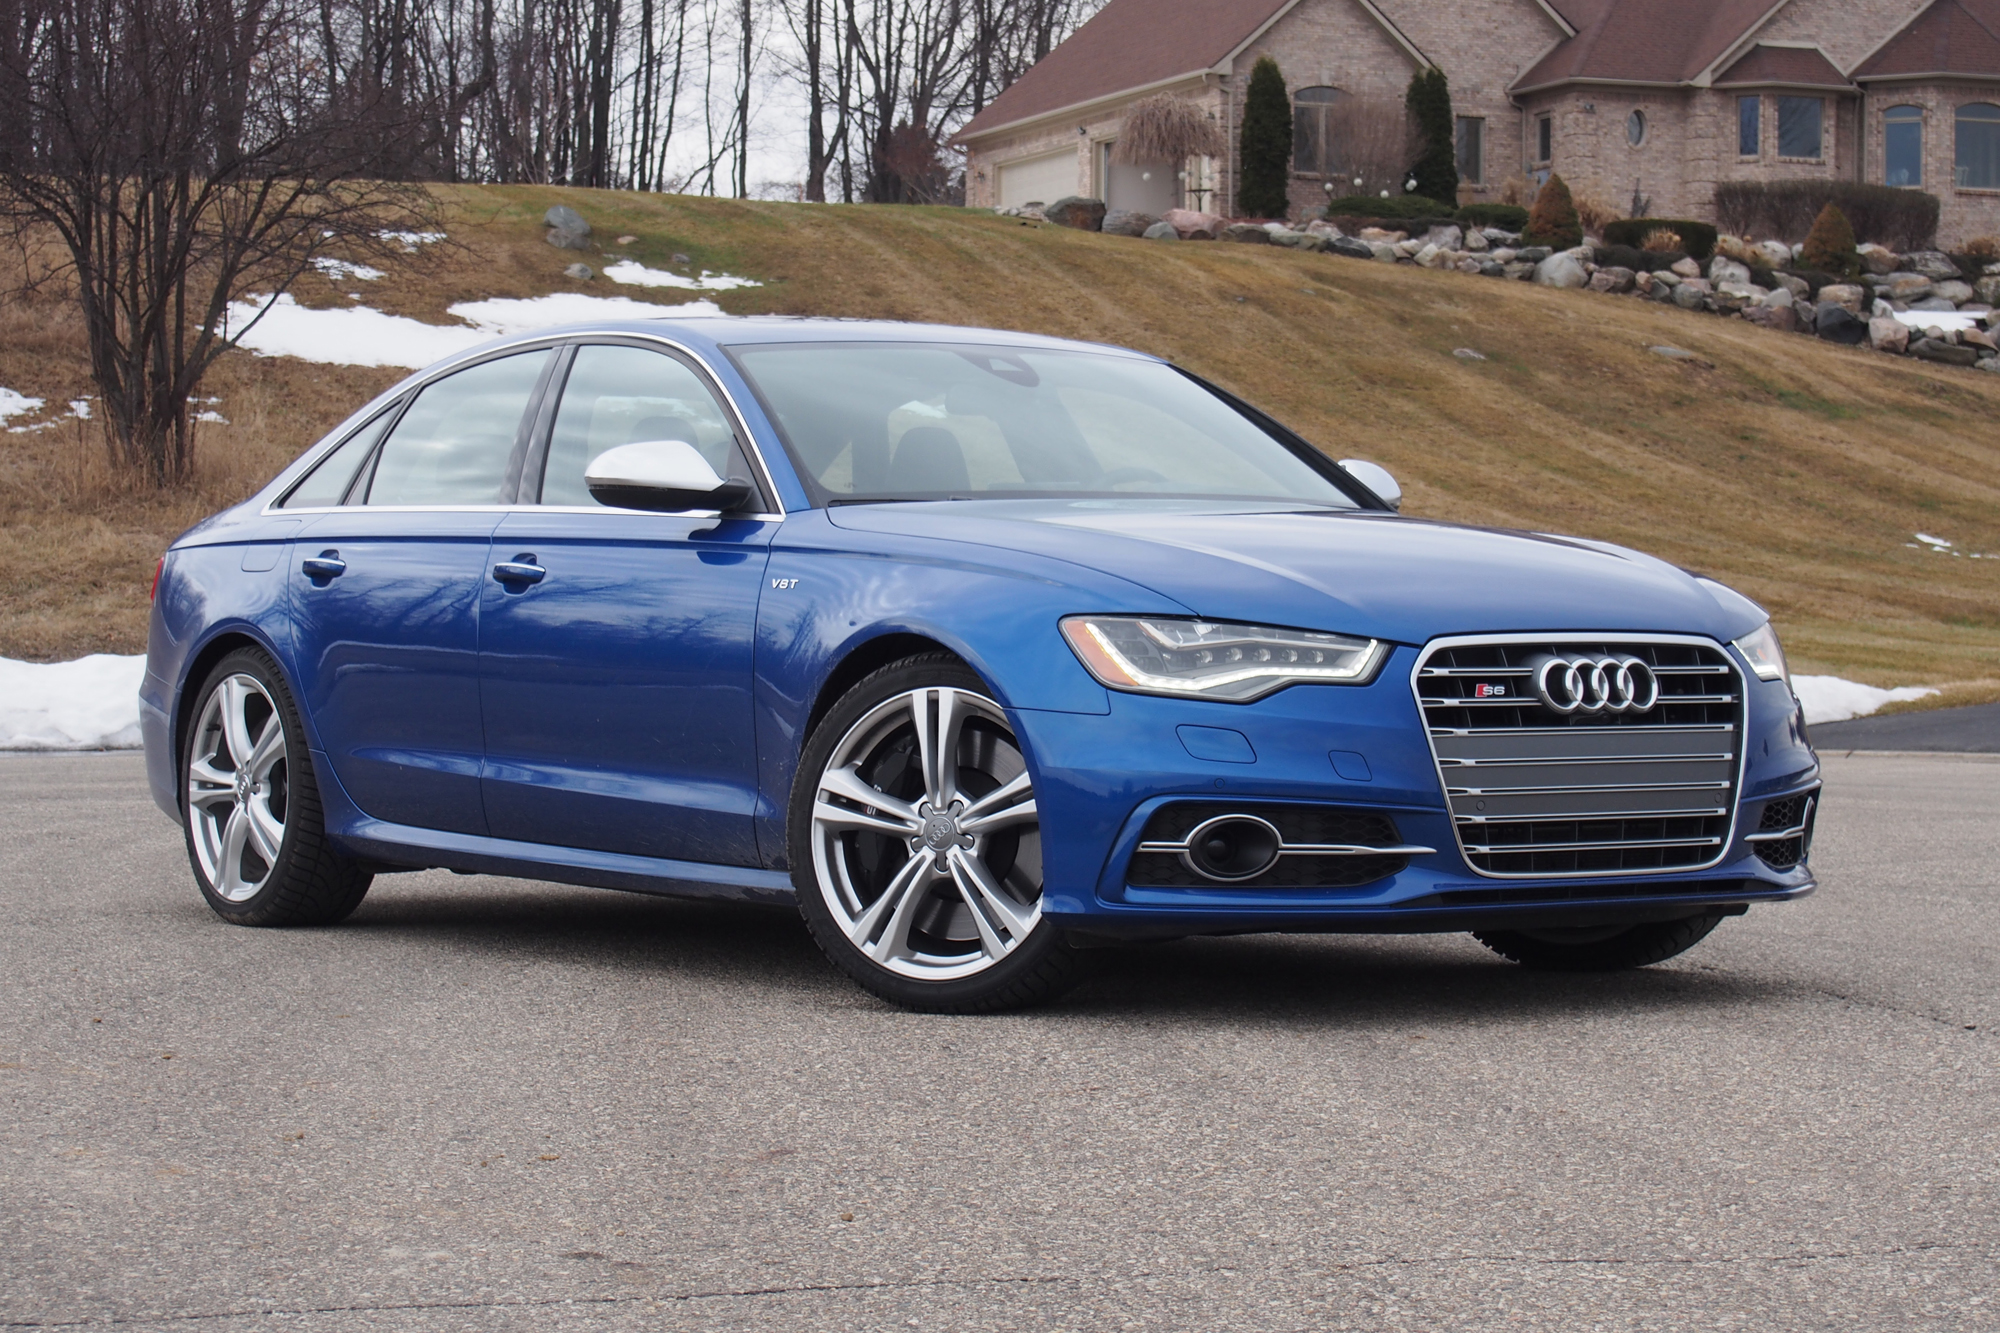 2015 audi s6 review mercedes benz forum for Mercedes benz forum